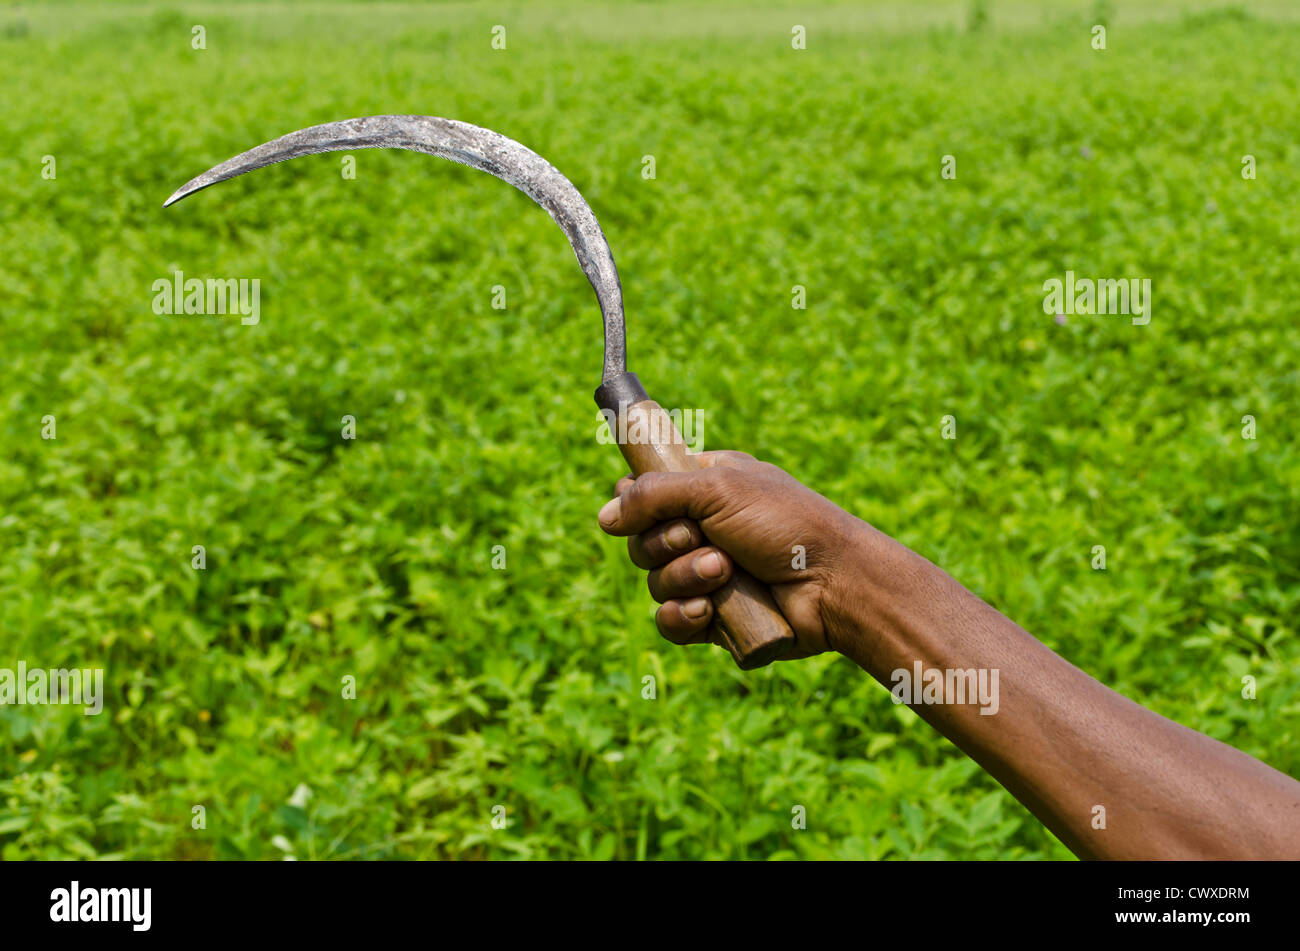 Hand holding sickle at the green farm at the background. Kansabel, Chhattisgarh, India. - Stock Image